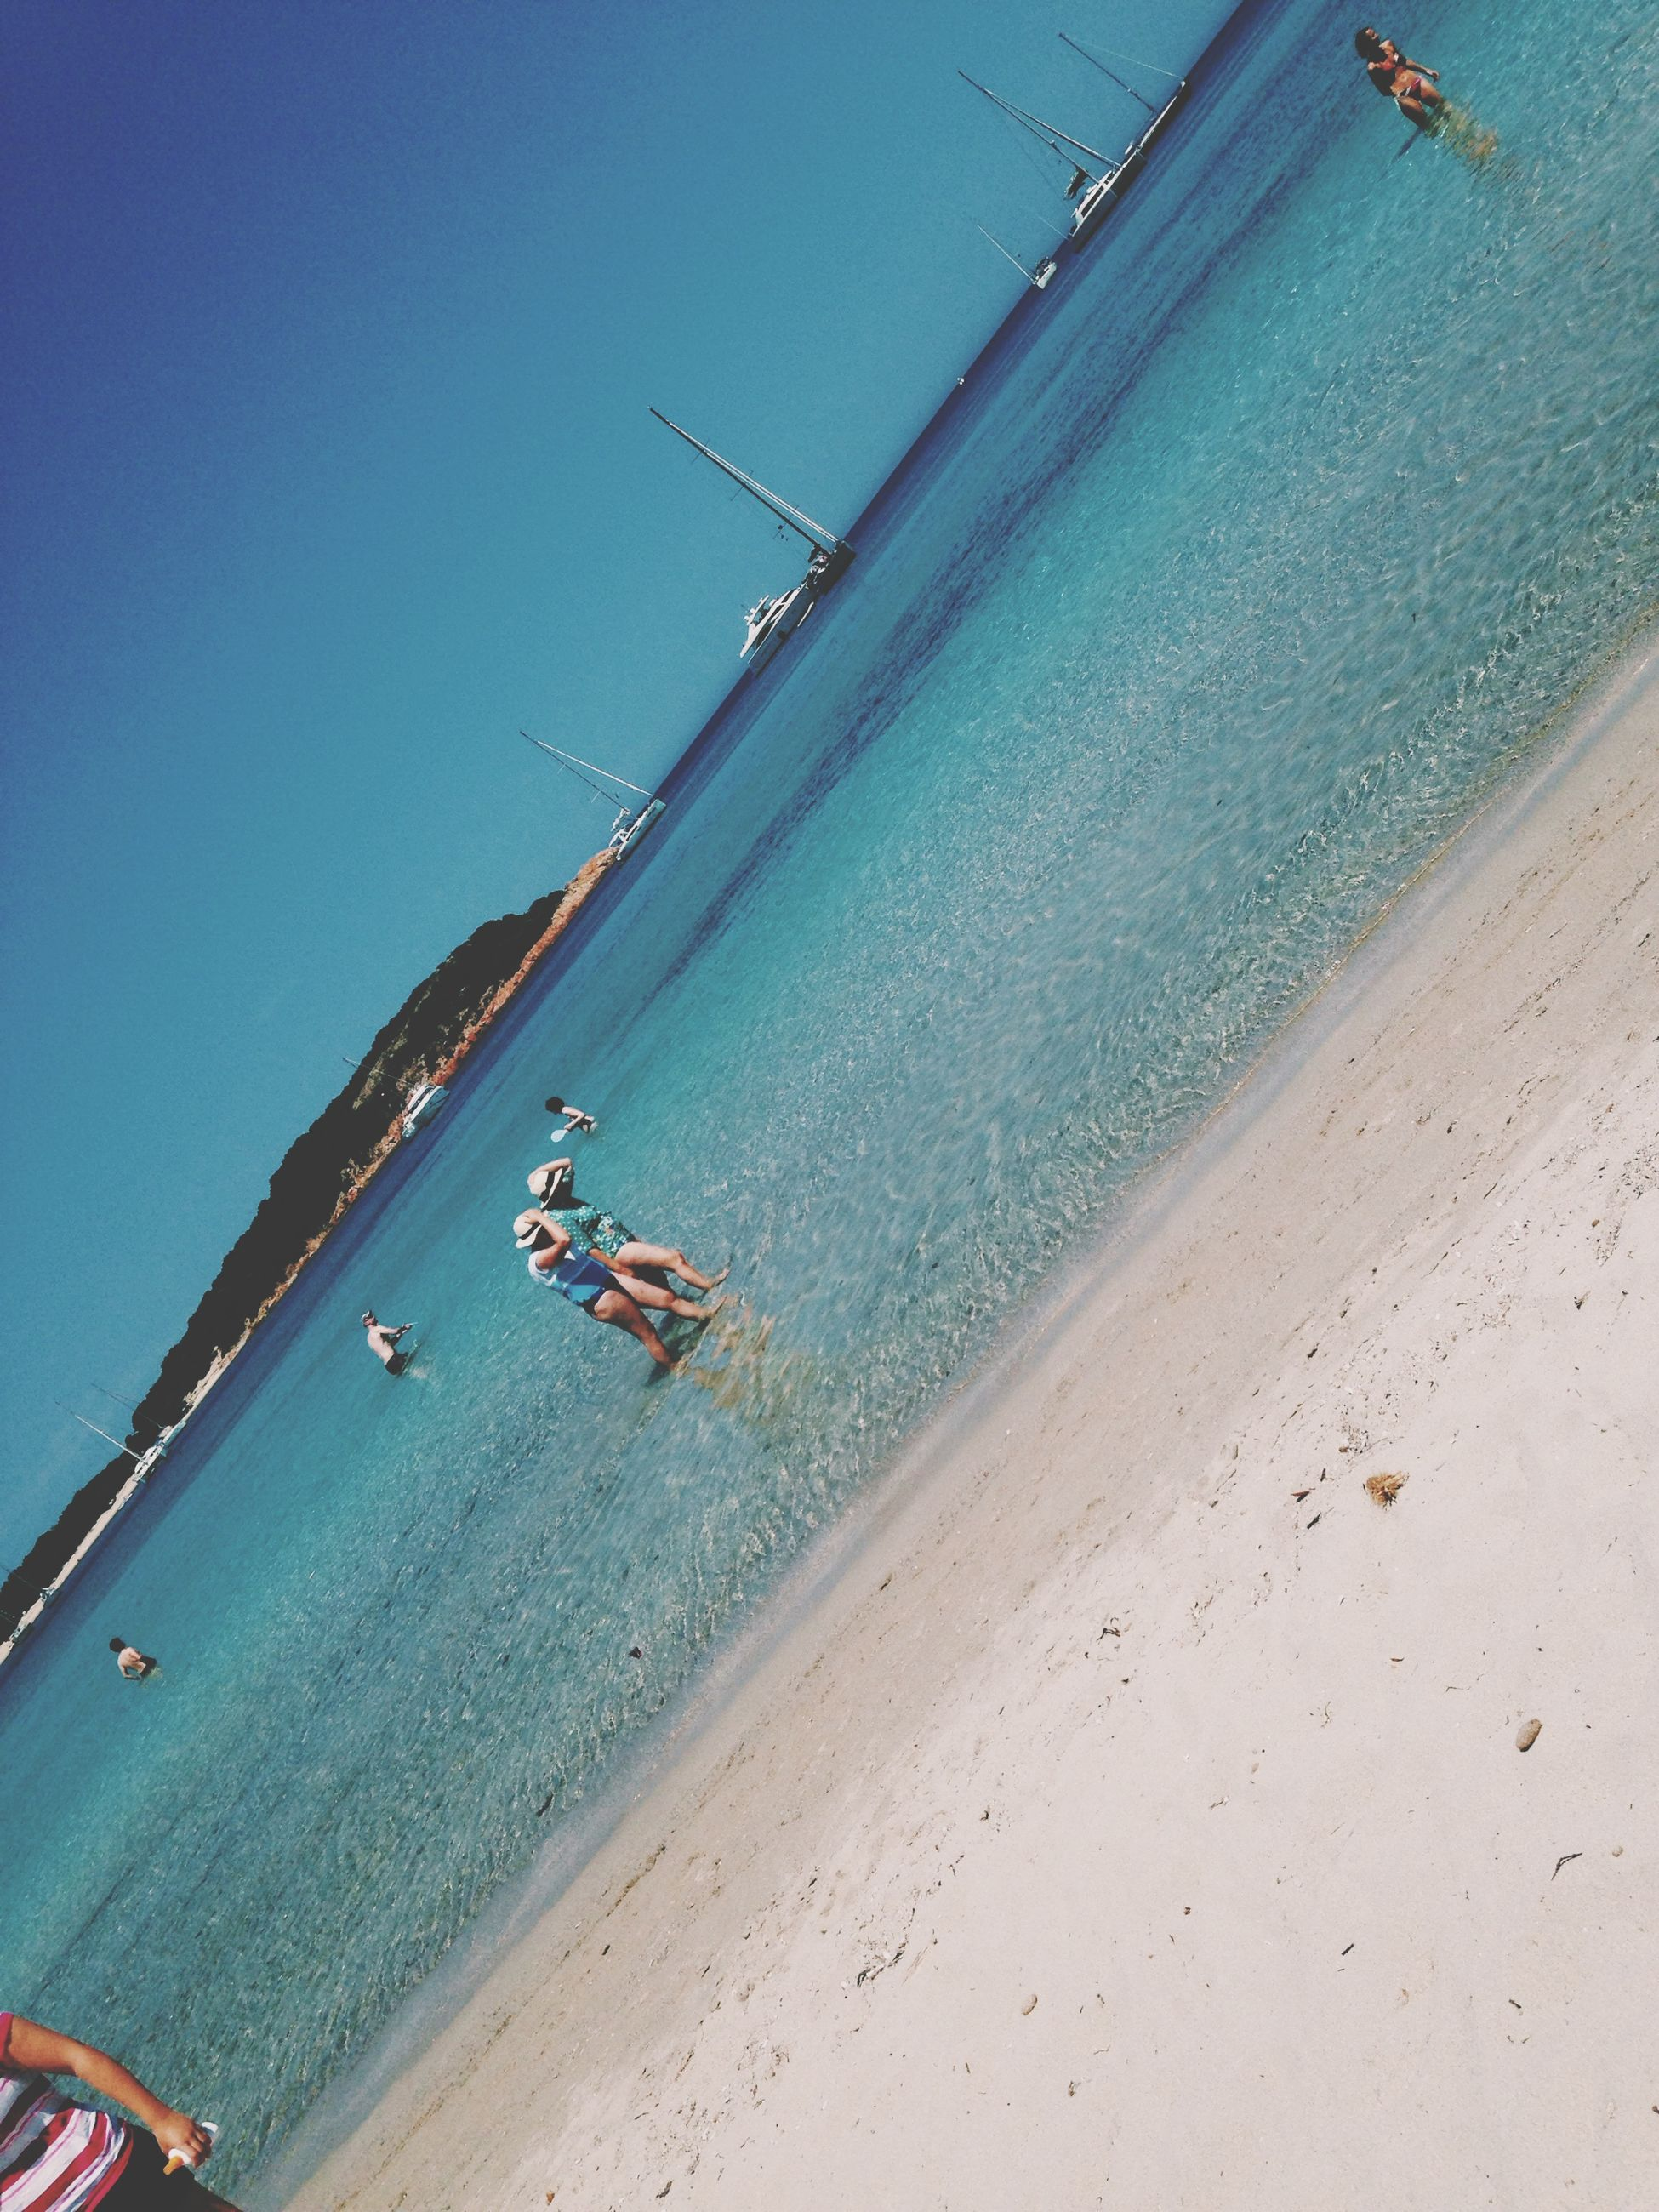 sea, water, beach, leisure activity, lifestyles, transportation, nautical vessel, men, sand, vacations, mode of transport, shore, enjoyment, high angle view, travel, large group of people, fun, blue, boat